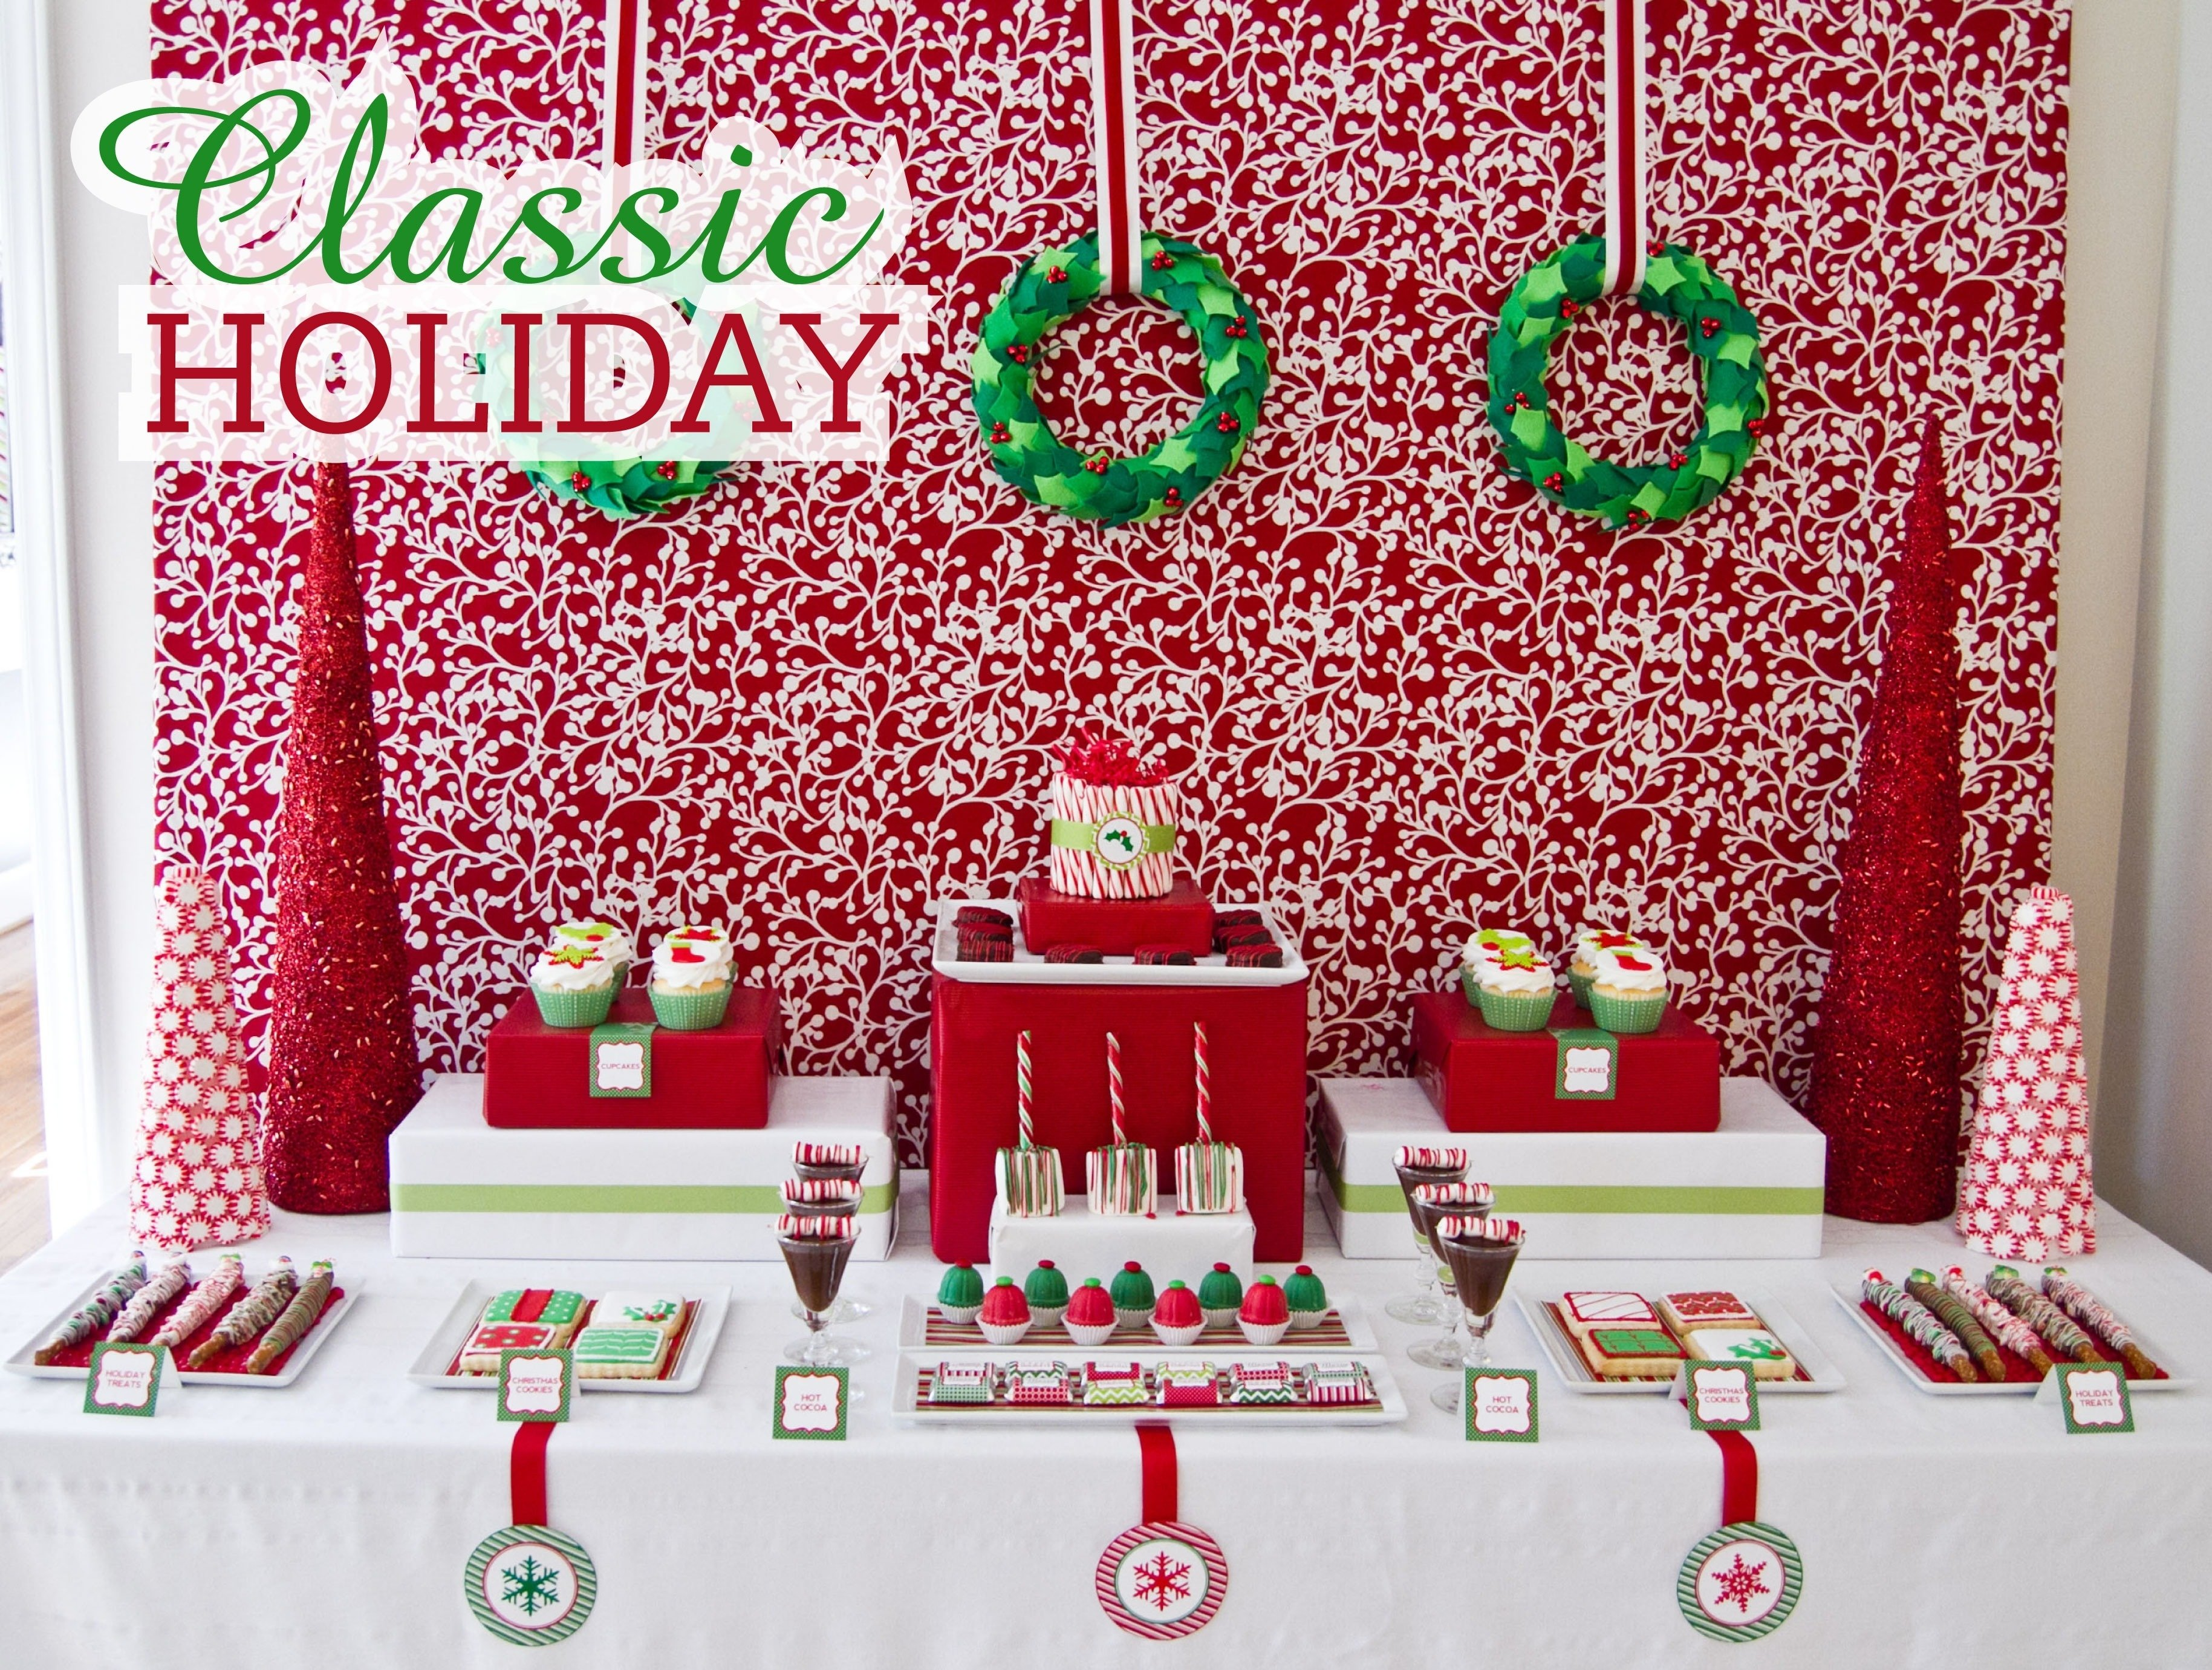 10 Best Christmas Party Ideas For Work ideas about office birthday decorations on pinterest giant paper